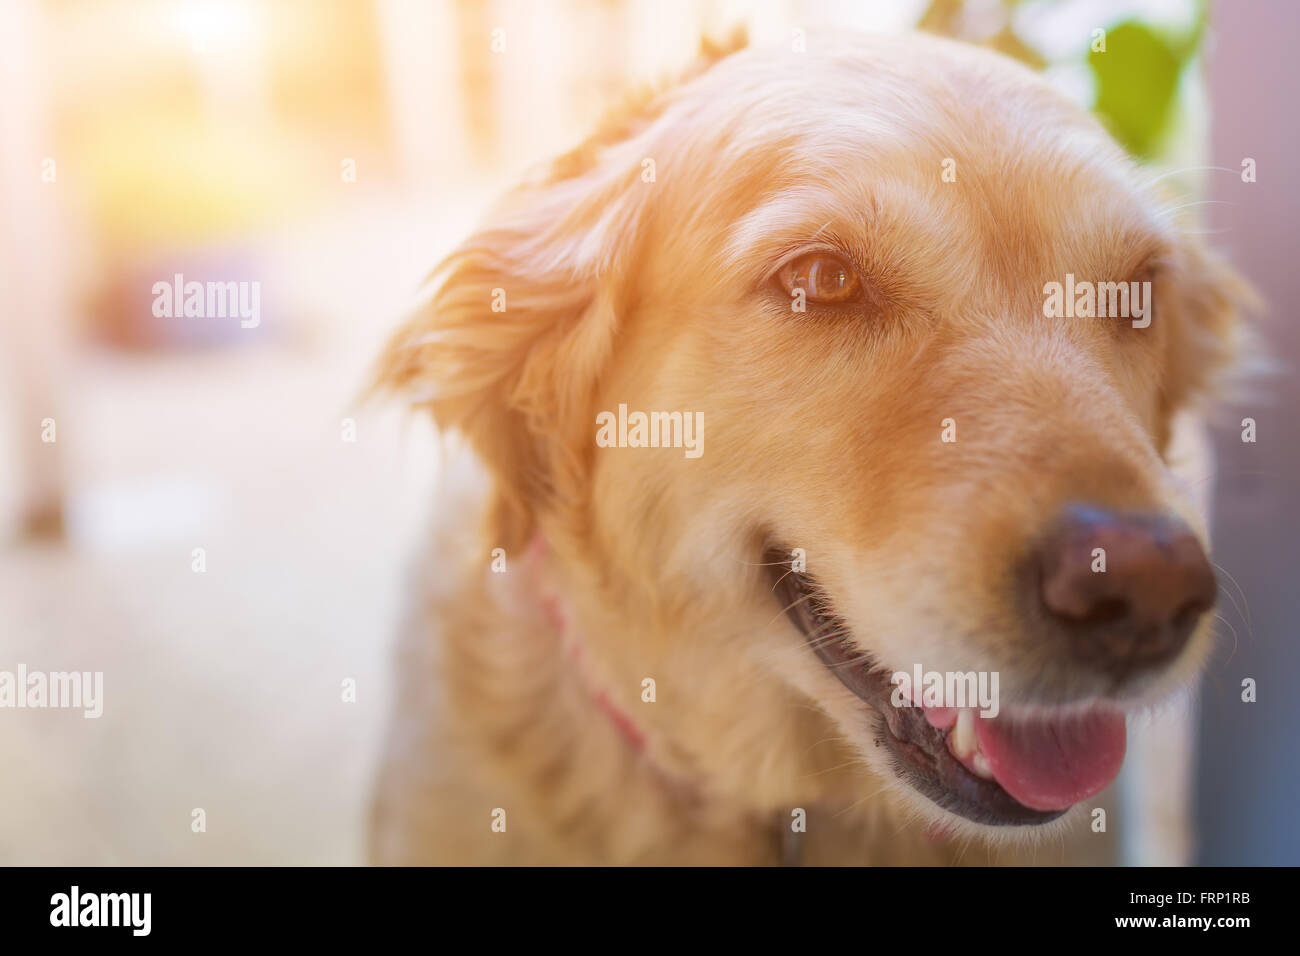 Portrait of a  dog - Stock Image